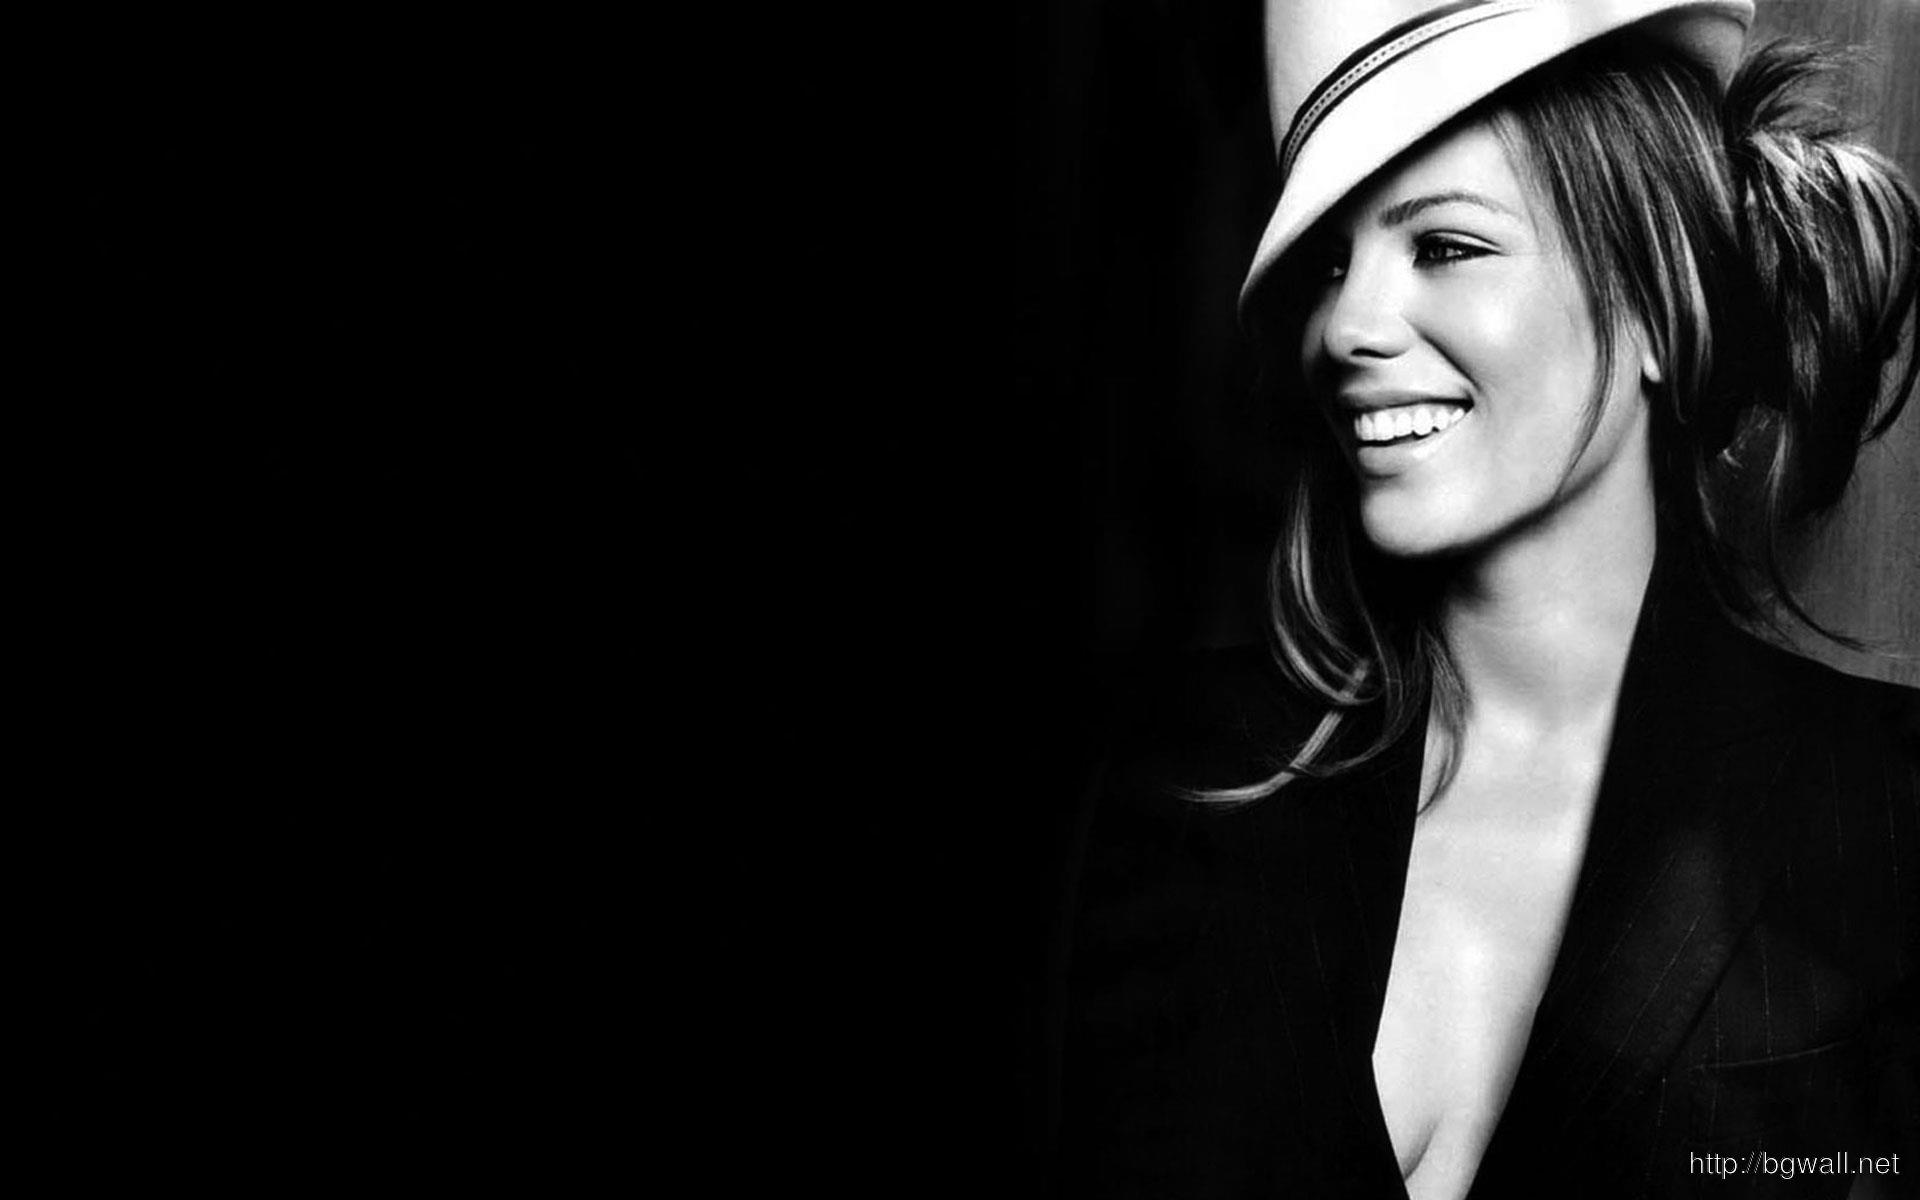 Kate Beckinsale with Hat in Black Background